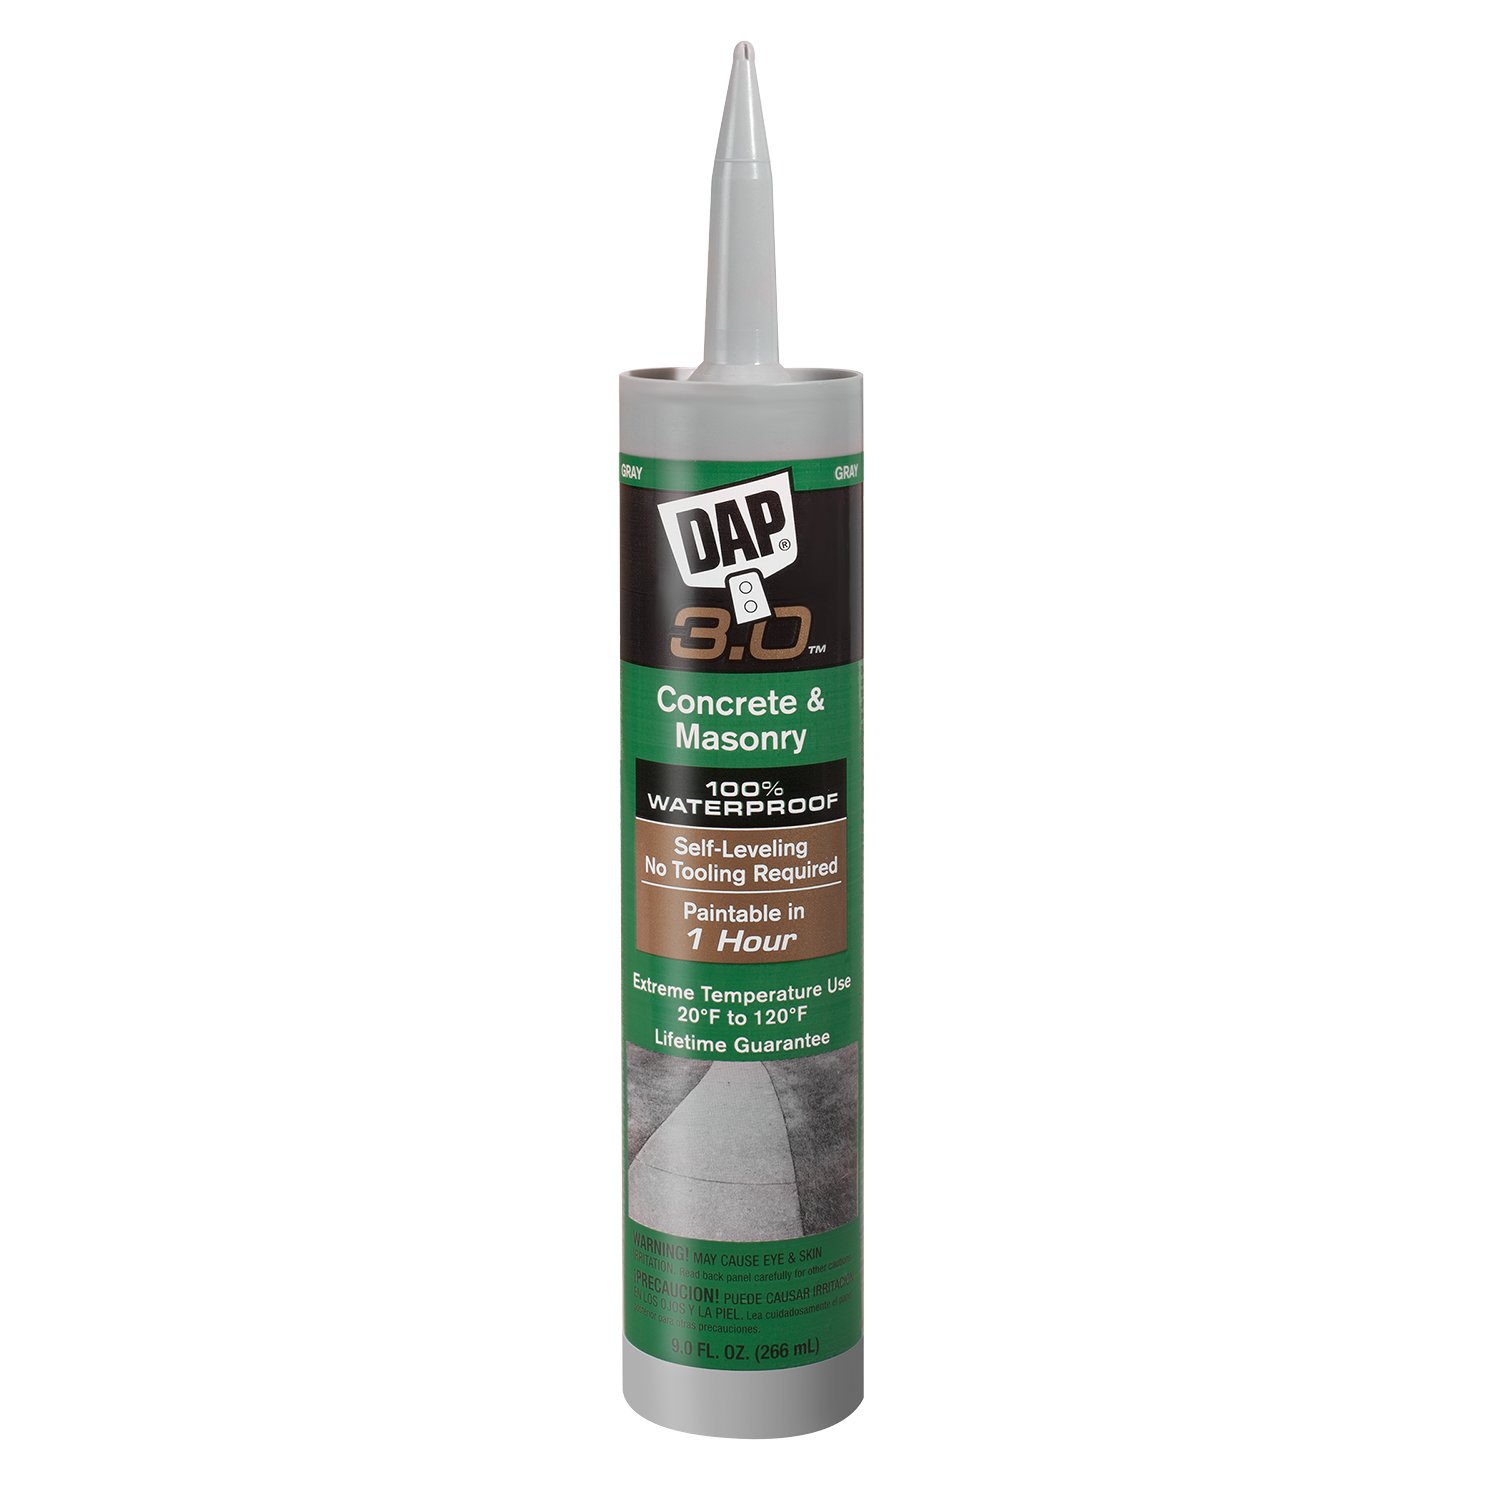 Dap 18370 Self-Leveling Concrete 3 0 Sealant 9 0-Ounce